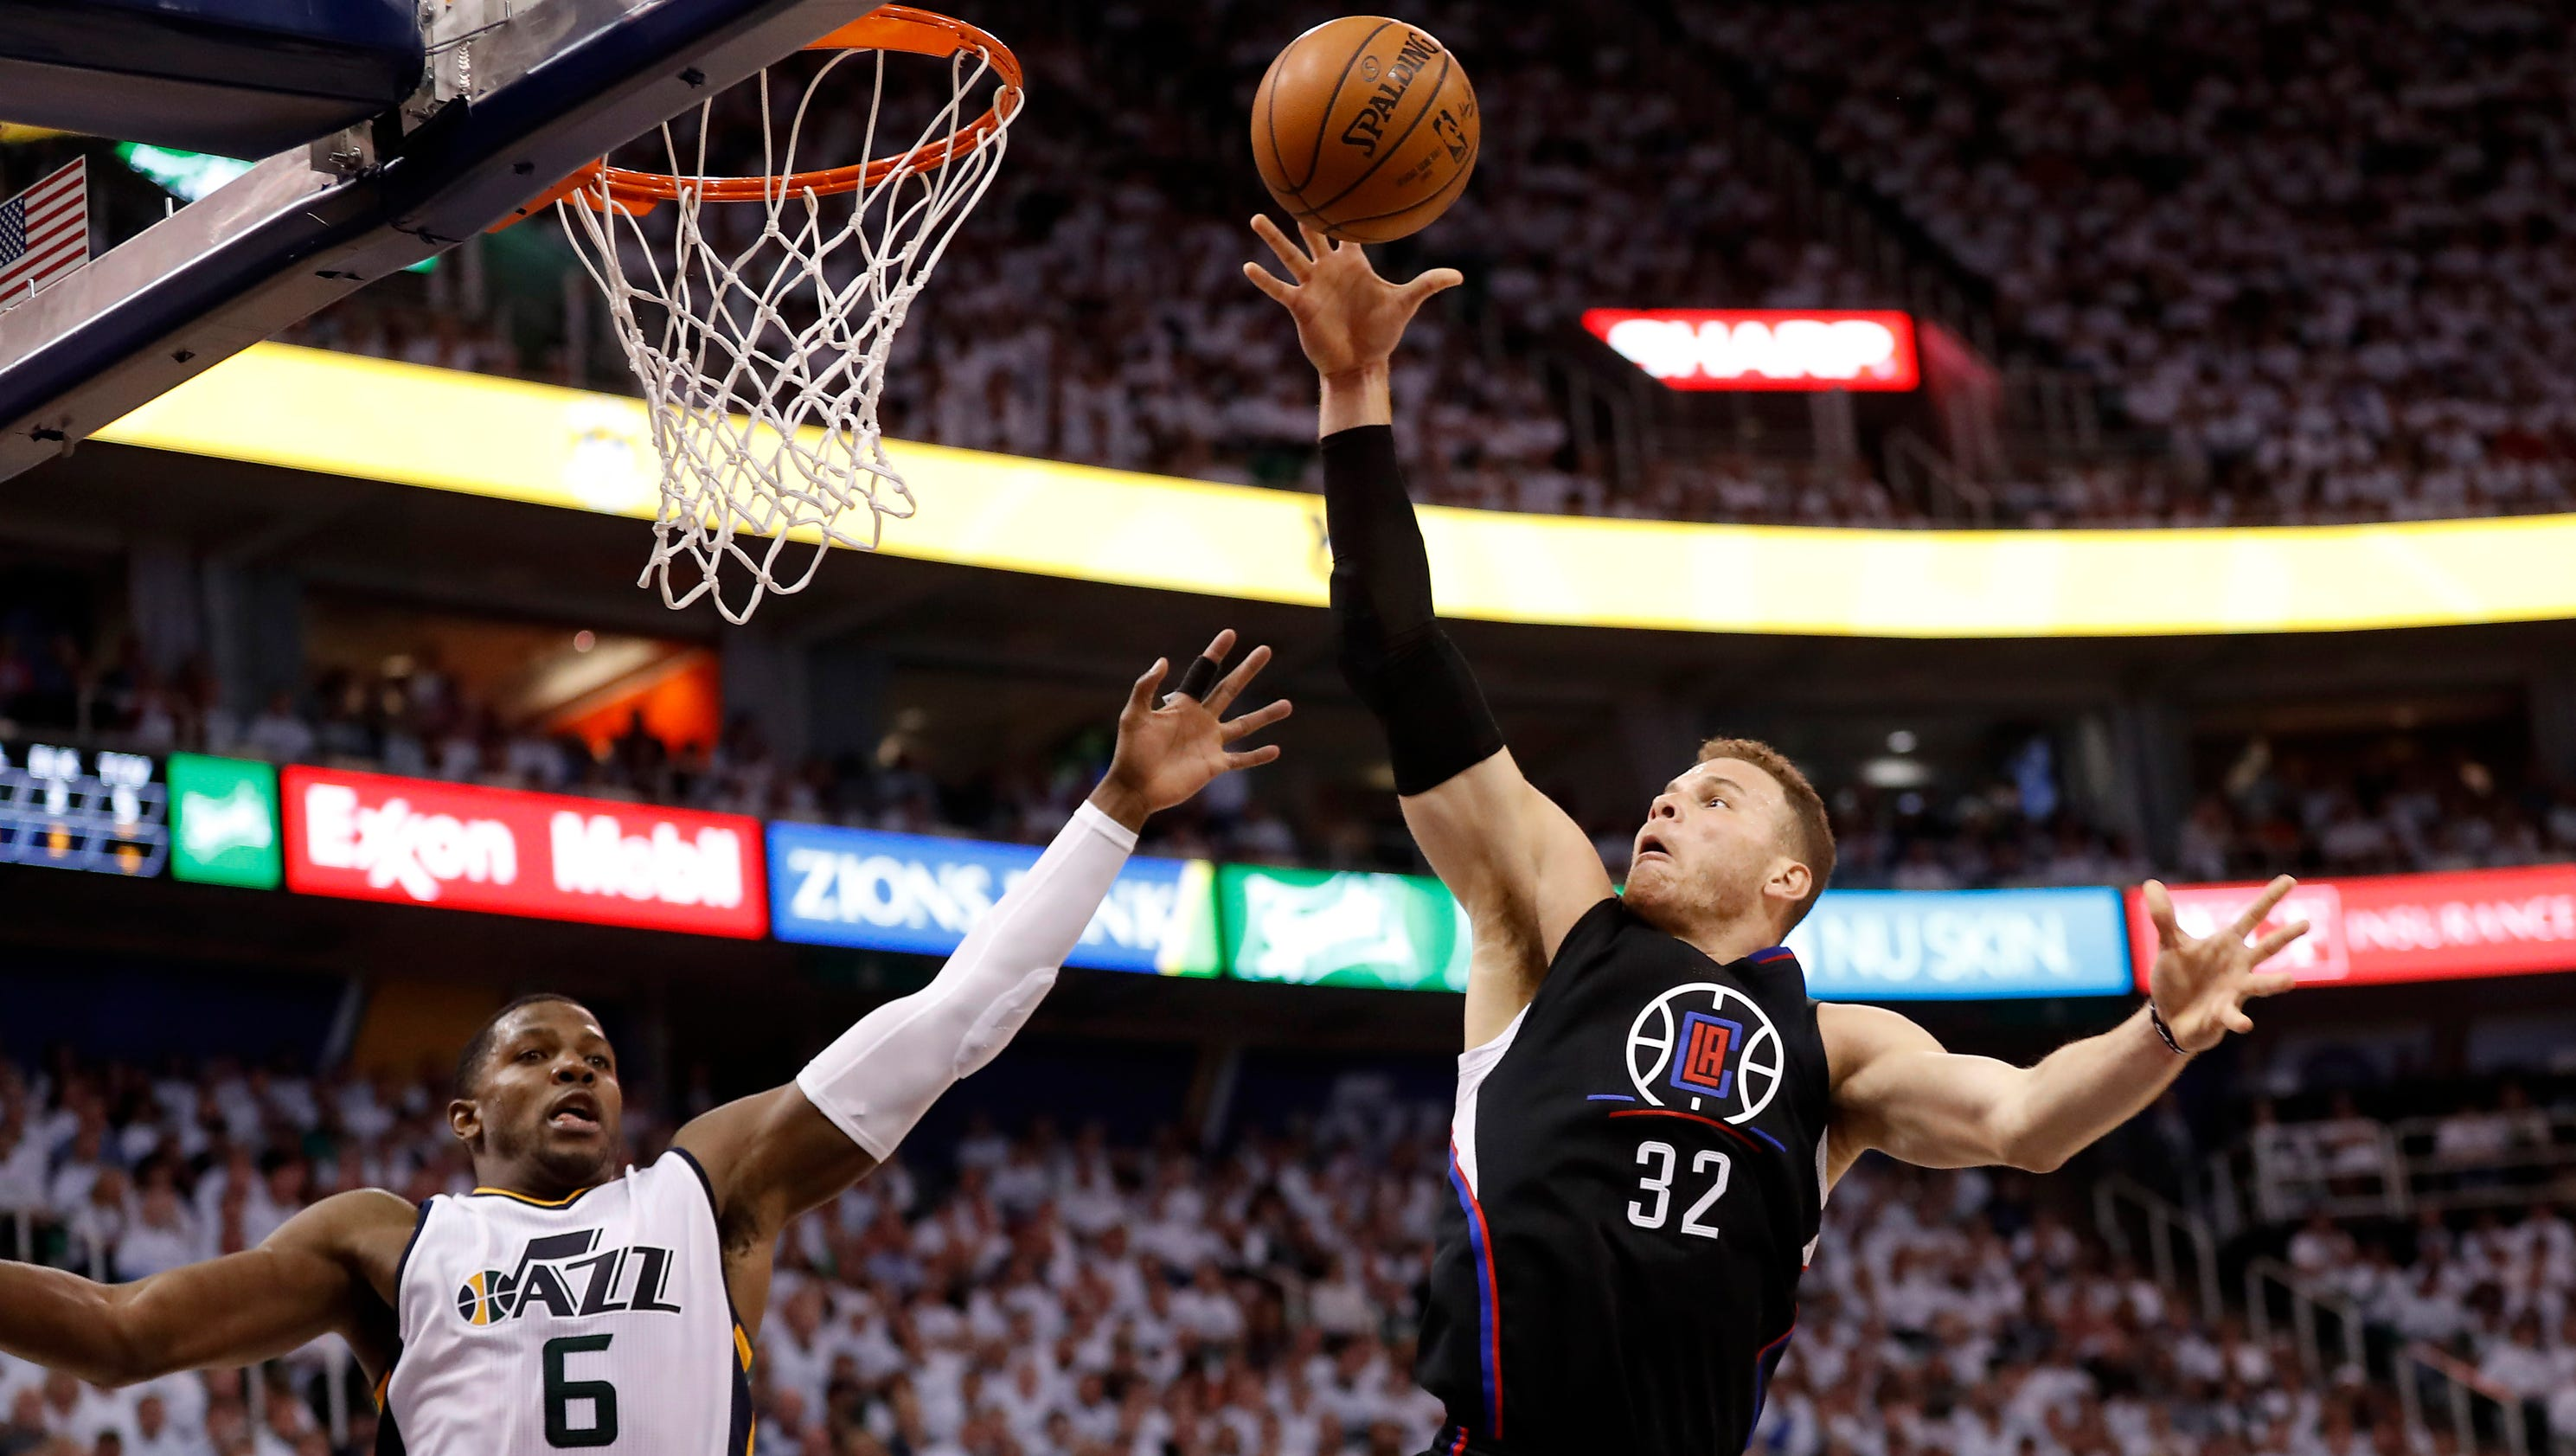 La clippers the impact of blake griffins surgery on the team foxsports com - Clippers Announce Blake Griffin To Miss Rest Of Playoffs With Toe Injury